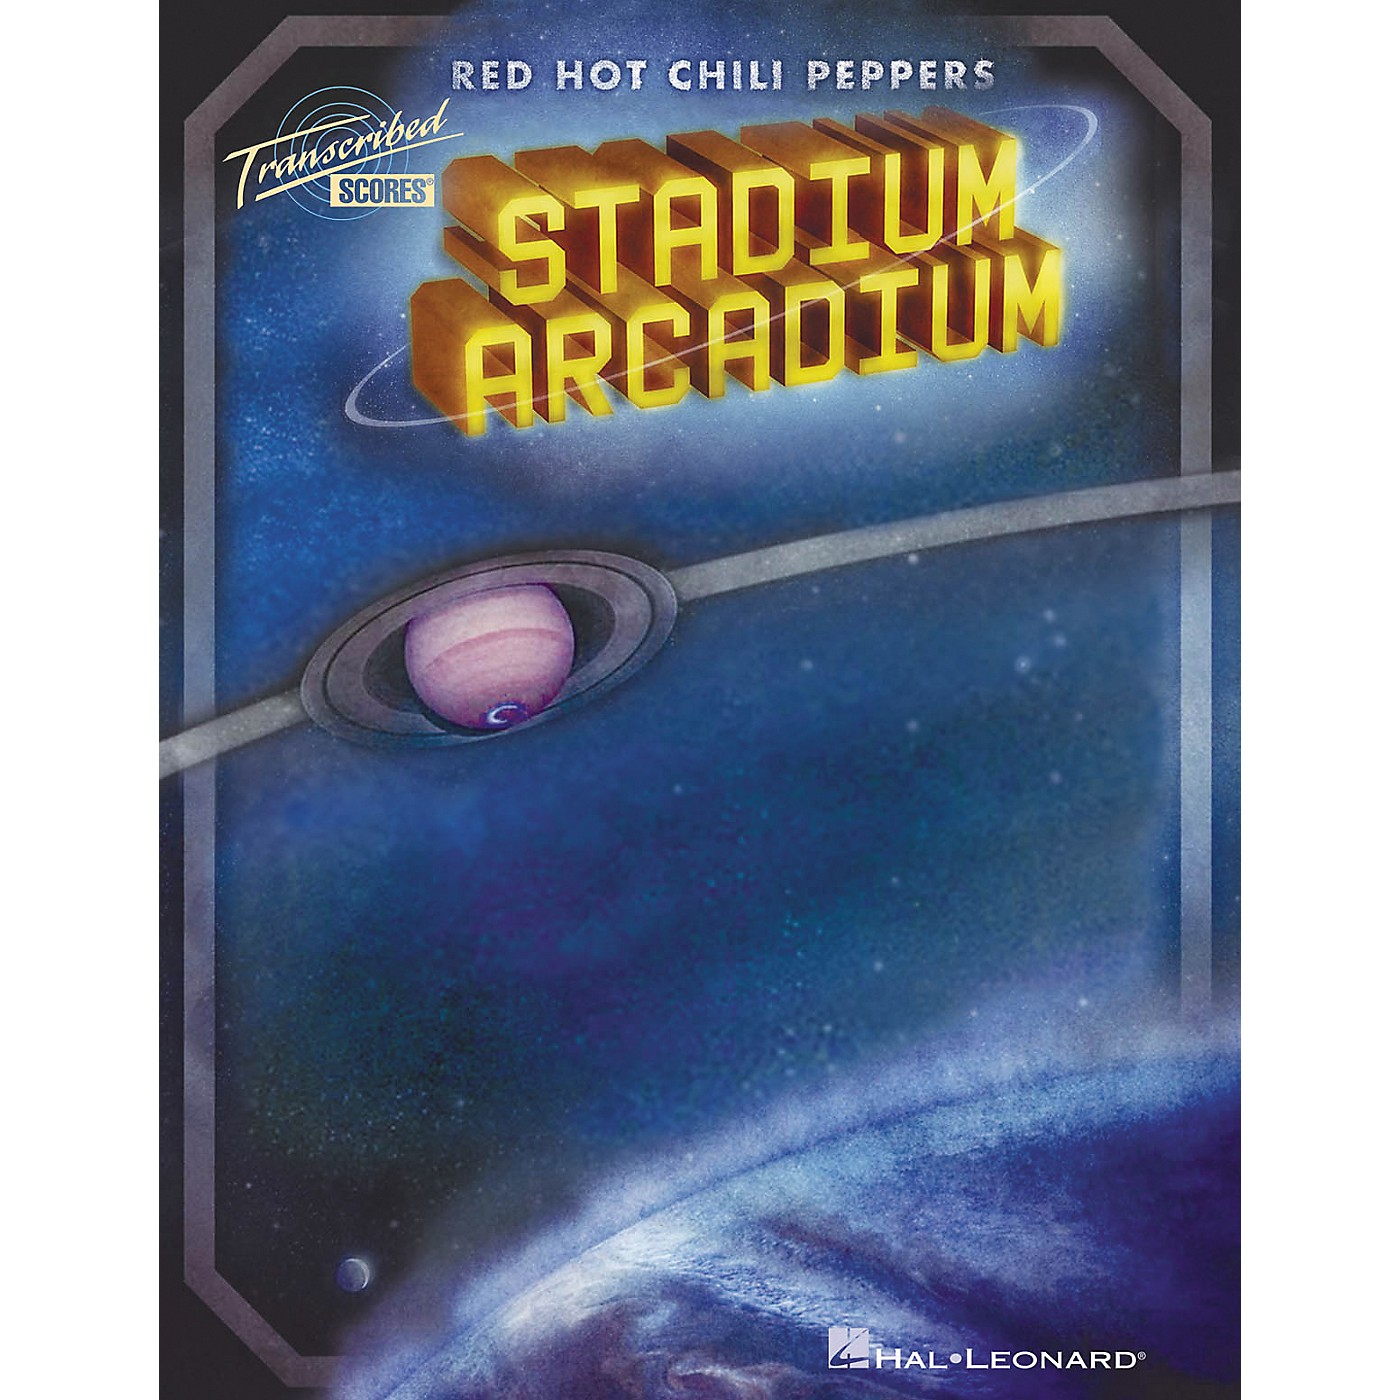 Hal Leonard Red Hot Chili Peppers - Stadium Arcadium Transcribed Score Songbook thumbnail